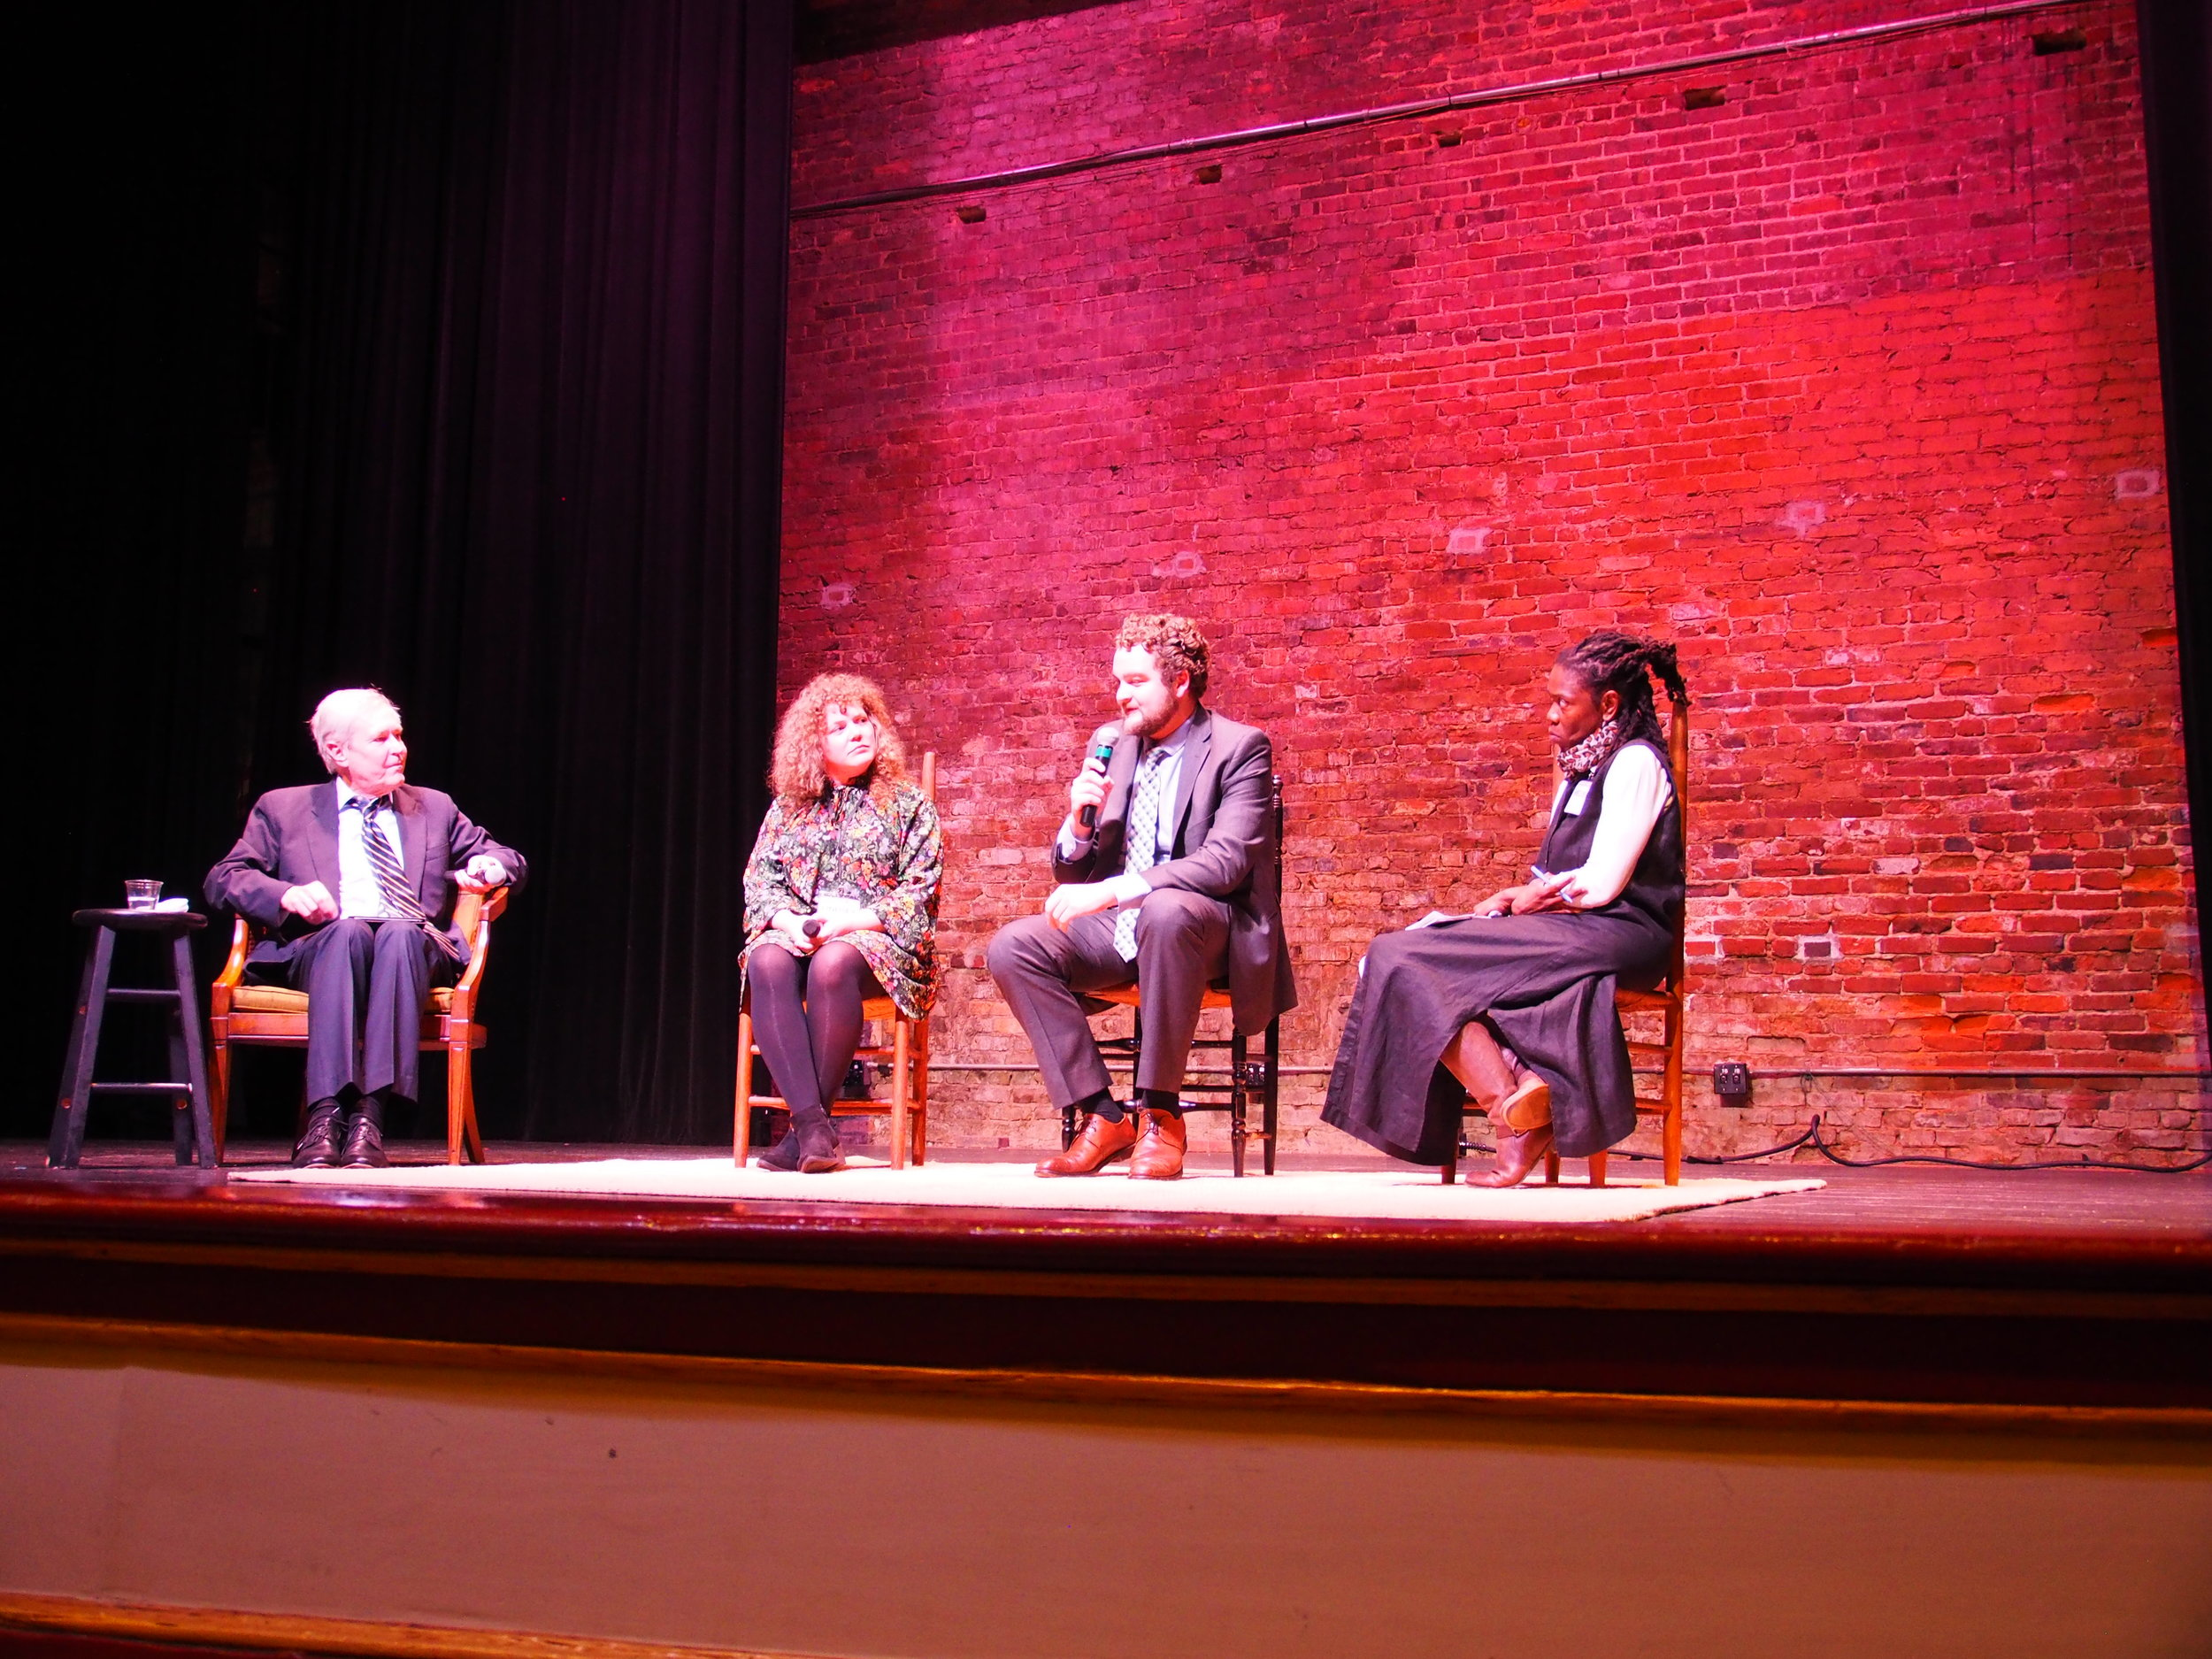 Revolving Fund Summit panelists—from left, author and researcher James Fallows, Lindsey Wallace of the National Main Street Center, Alex Morrison of the Macon-Bibb Urban Development Authority, and Melissa Jest of the Georgia Historic Preservation Division—discuss downtown development and potential growth. | Credit: Rachelle Wilson